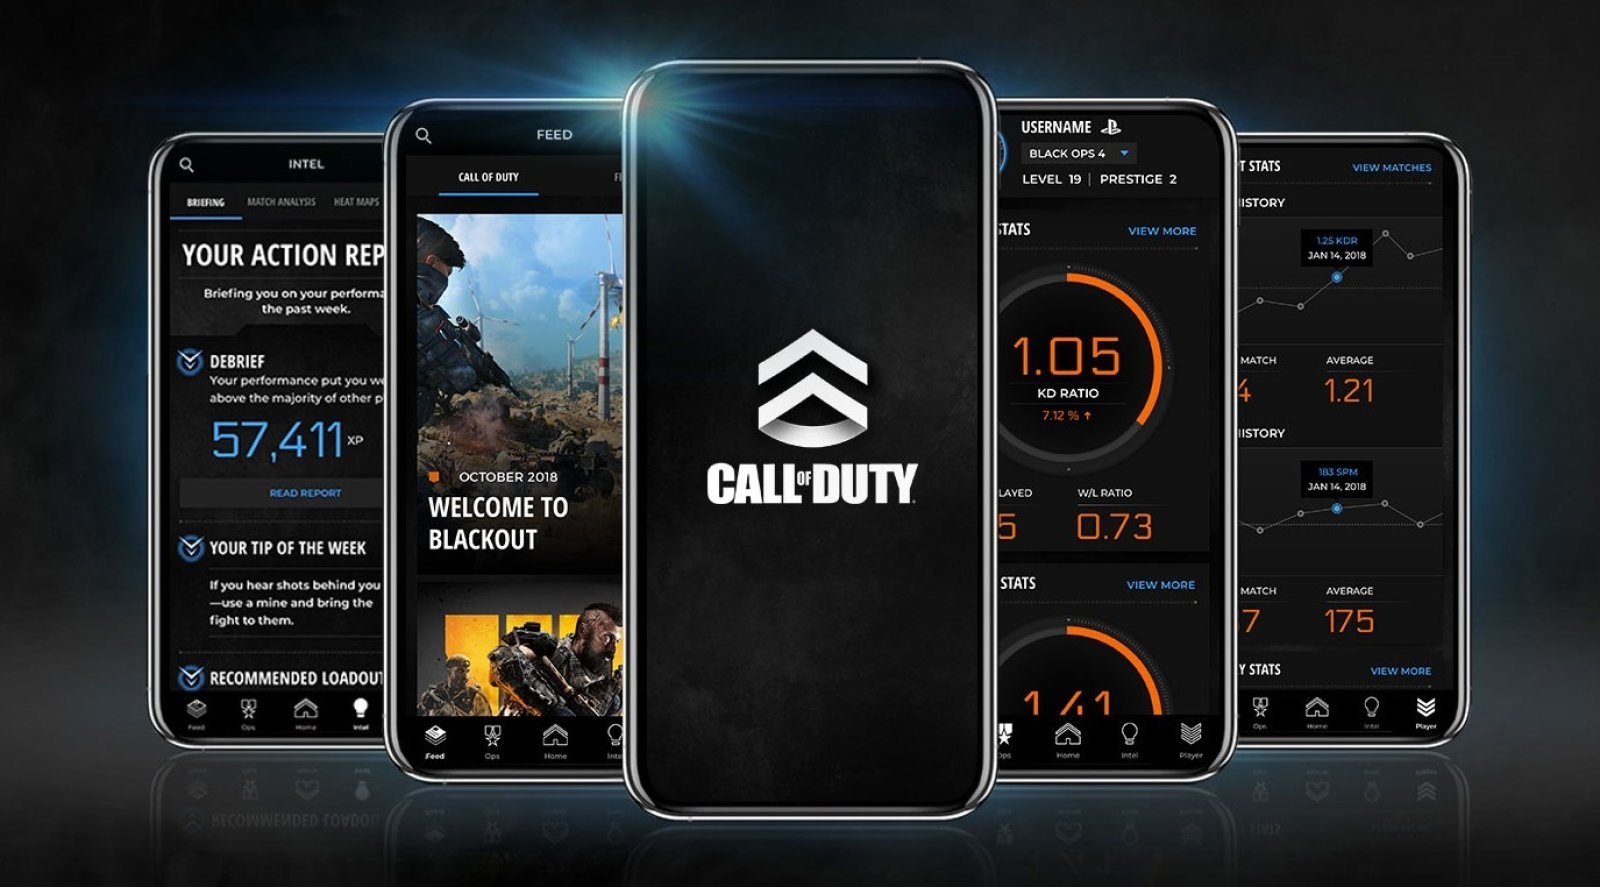 Activision has released an iOS companion app for Call of Duty